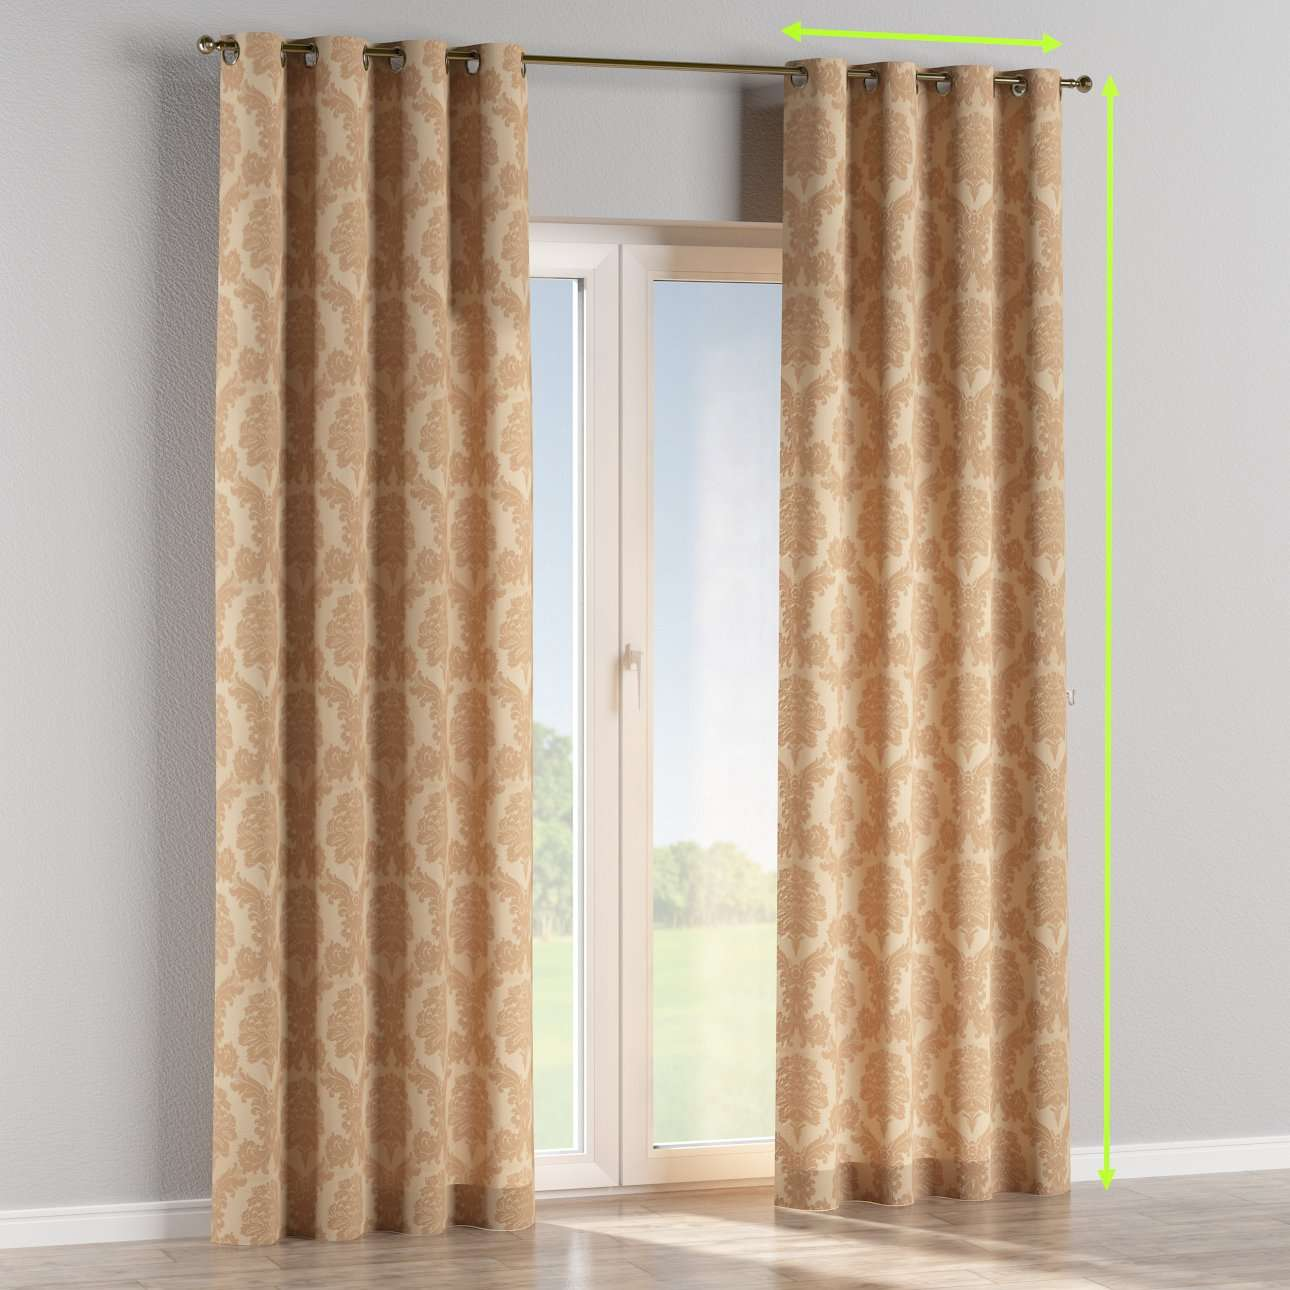 Eyelet curtains in collection Damasco, fabric: 613-04